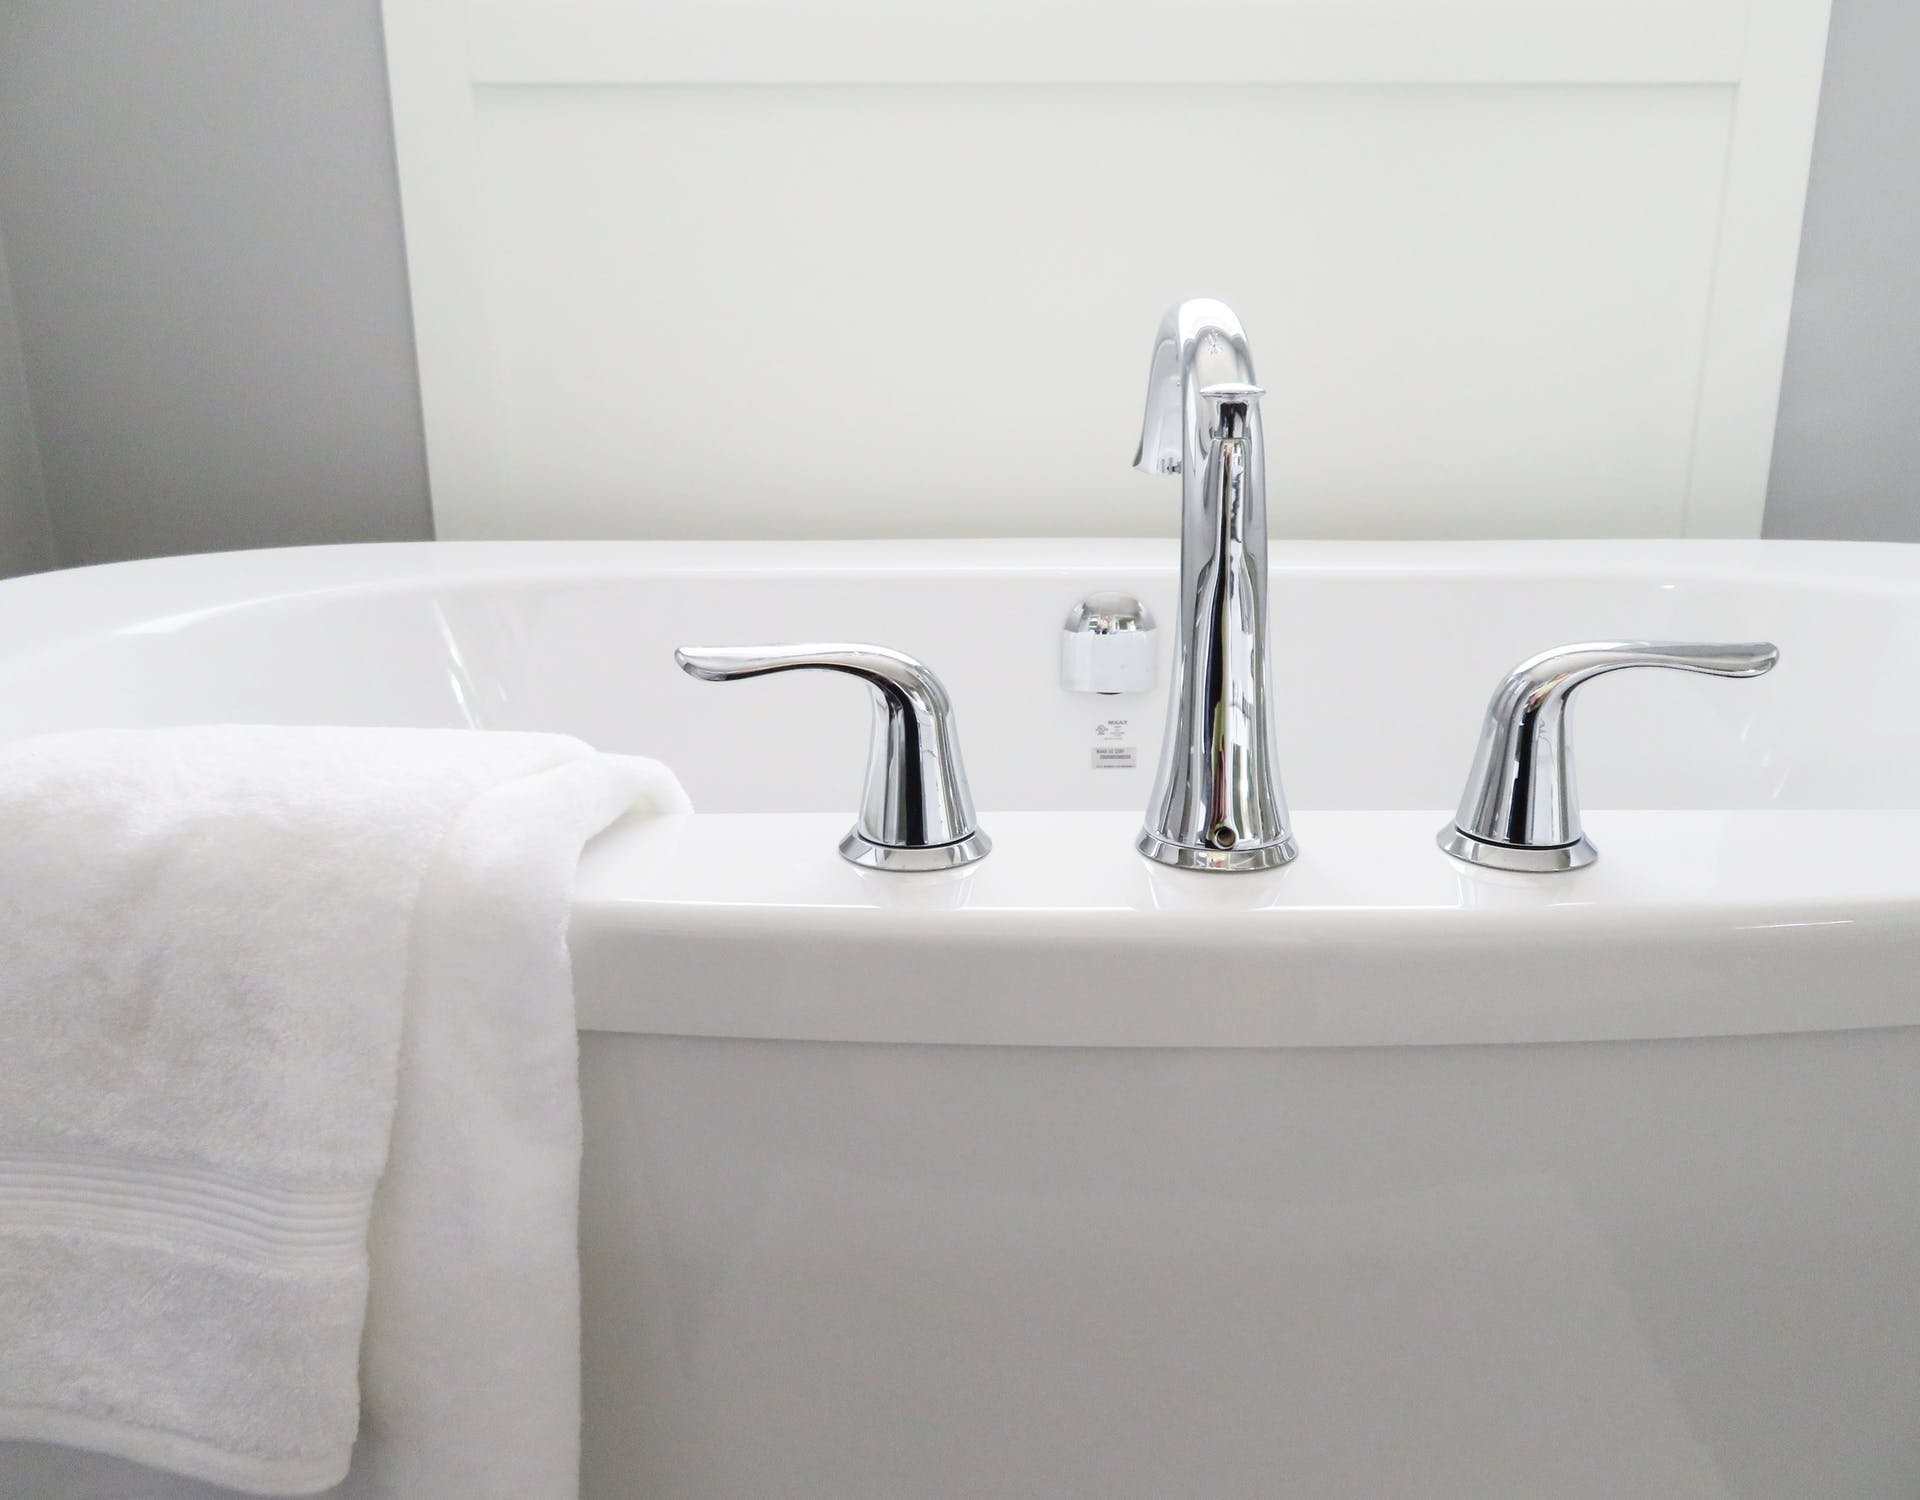 15 Cheap Bathroom Staging Ideas Inspired By 5 Star Hotels